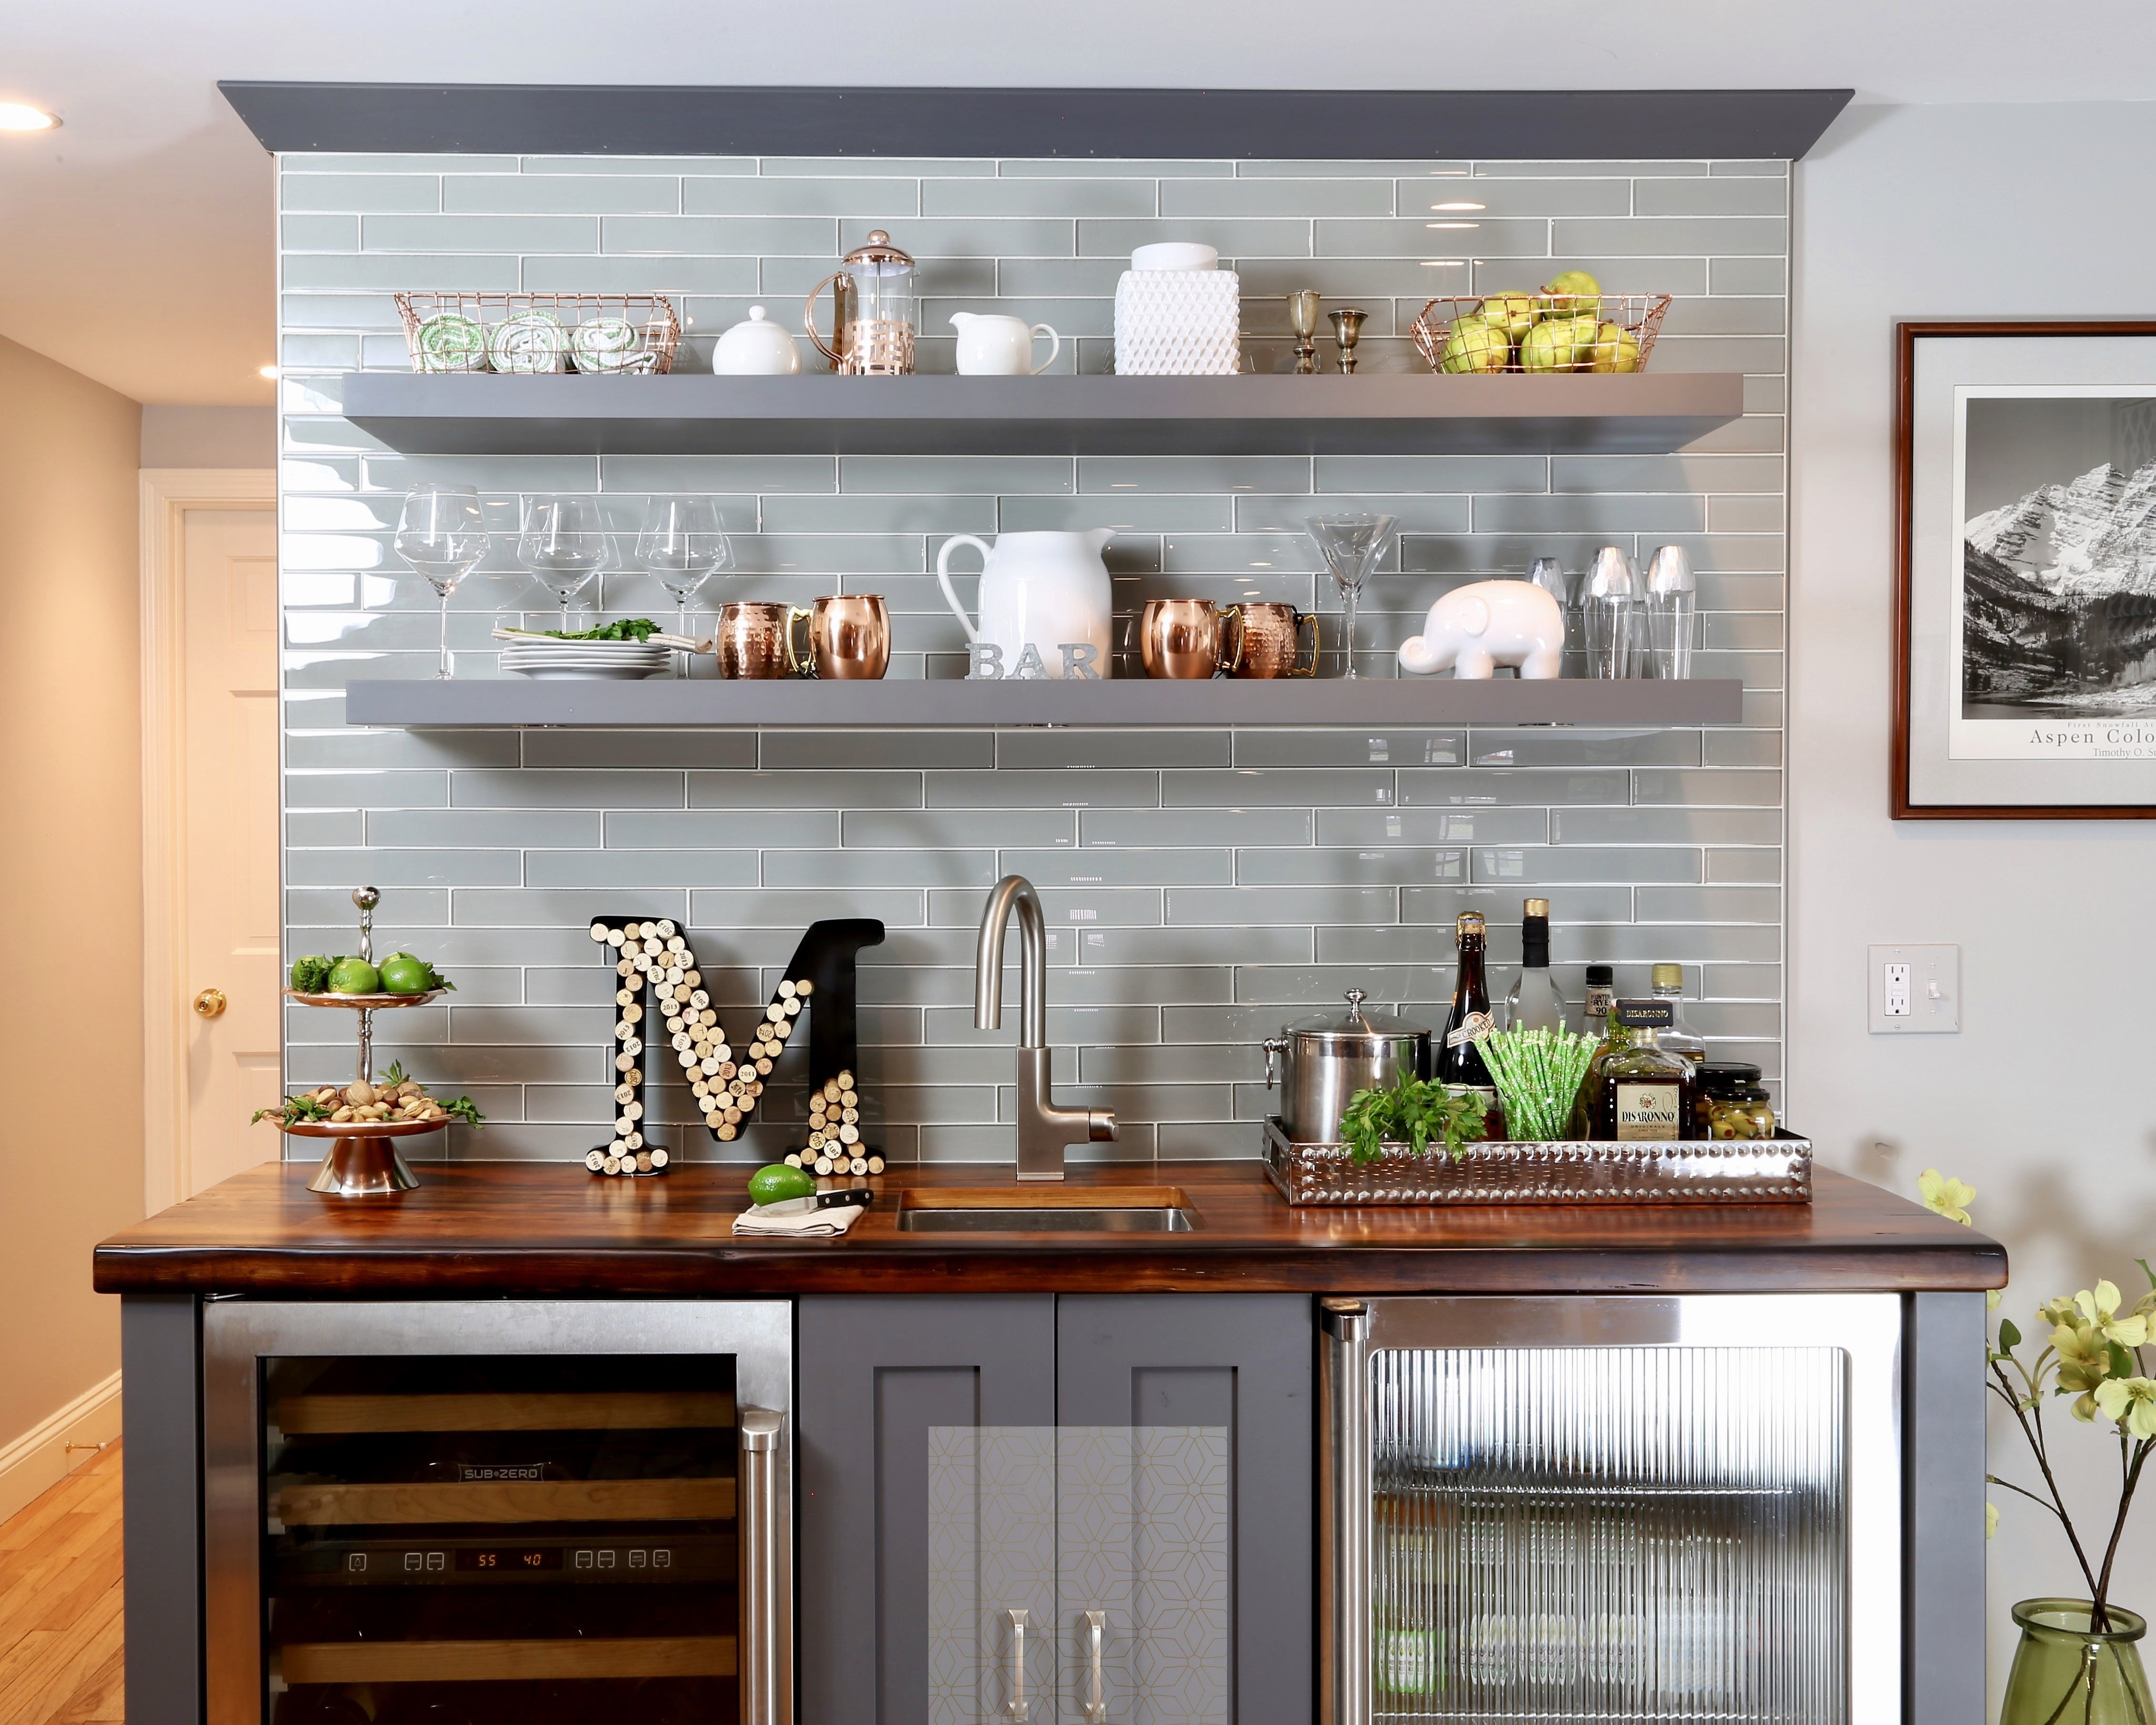 astonishing cool ideas floating shelves kitchen butler pantry staggered shelf desk small bedrooms ikea bookshelf vegetable stand for wooden cubes bunnings wall mounted bathroom